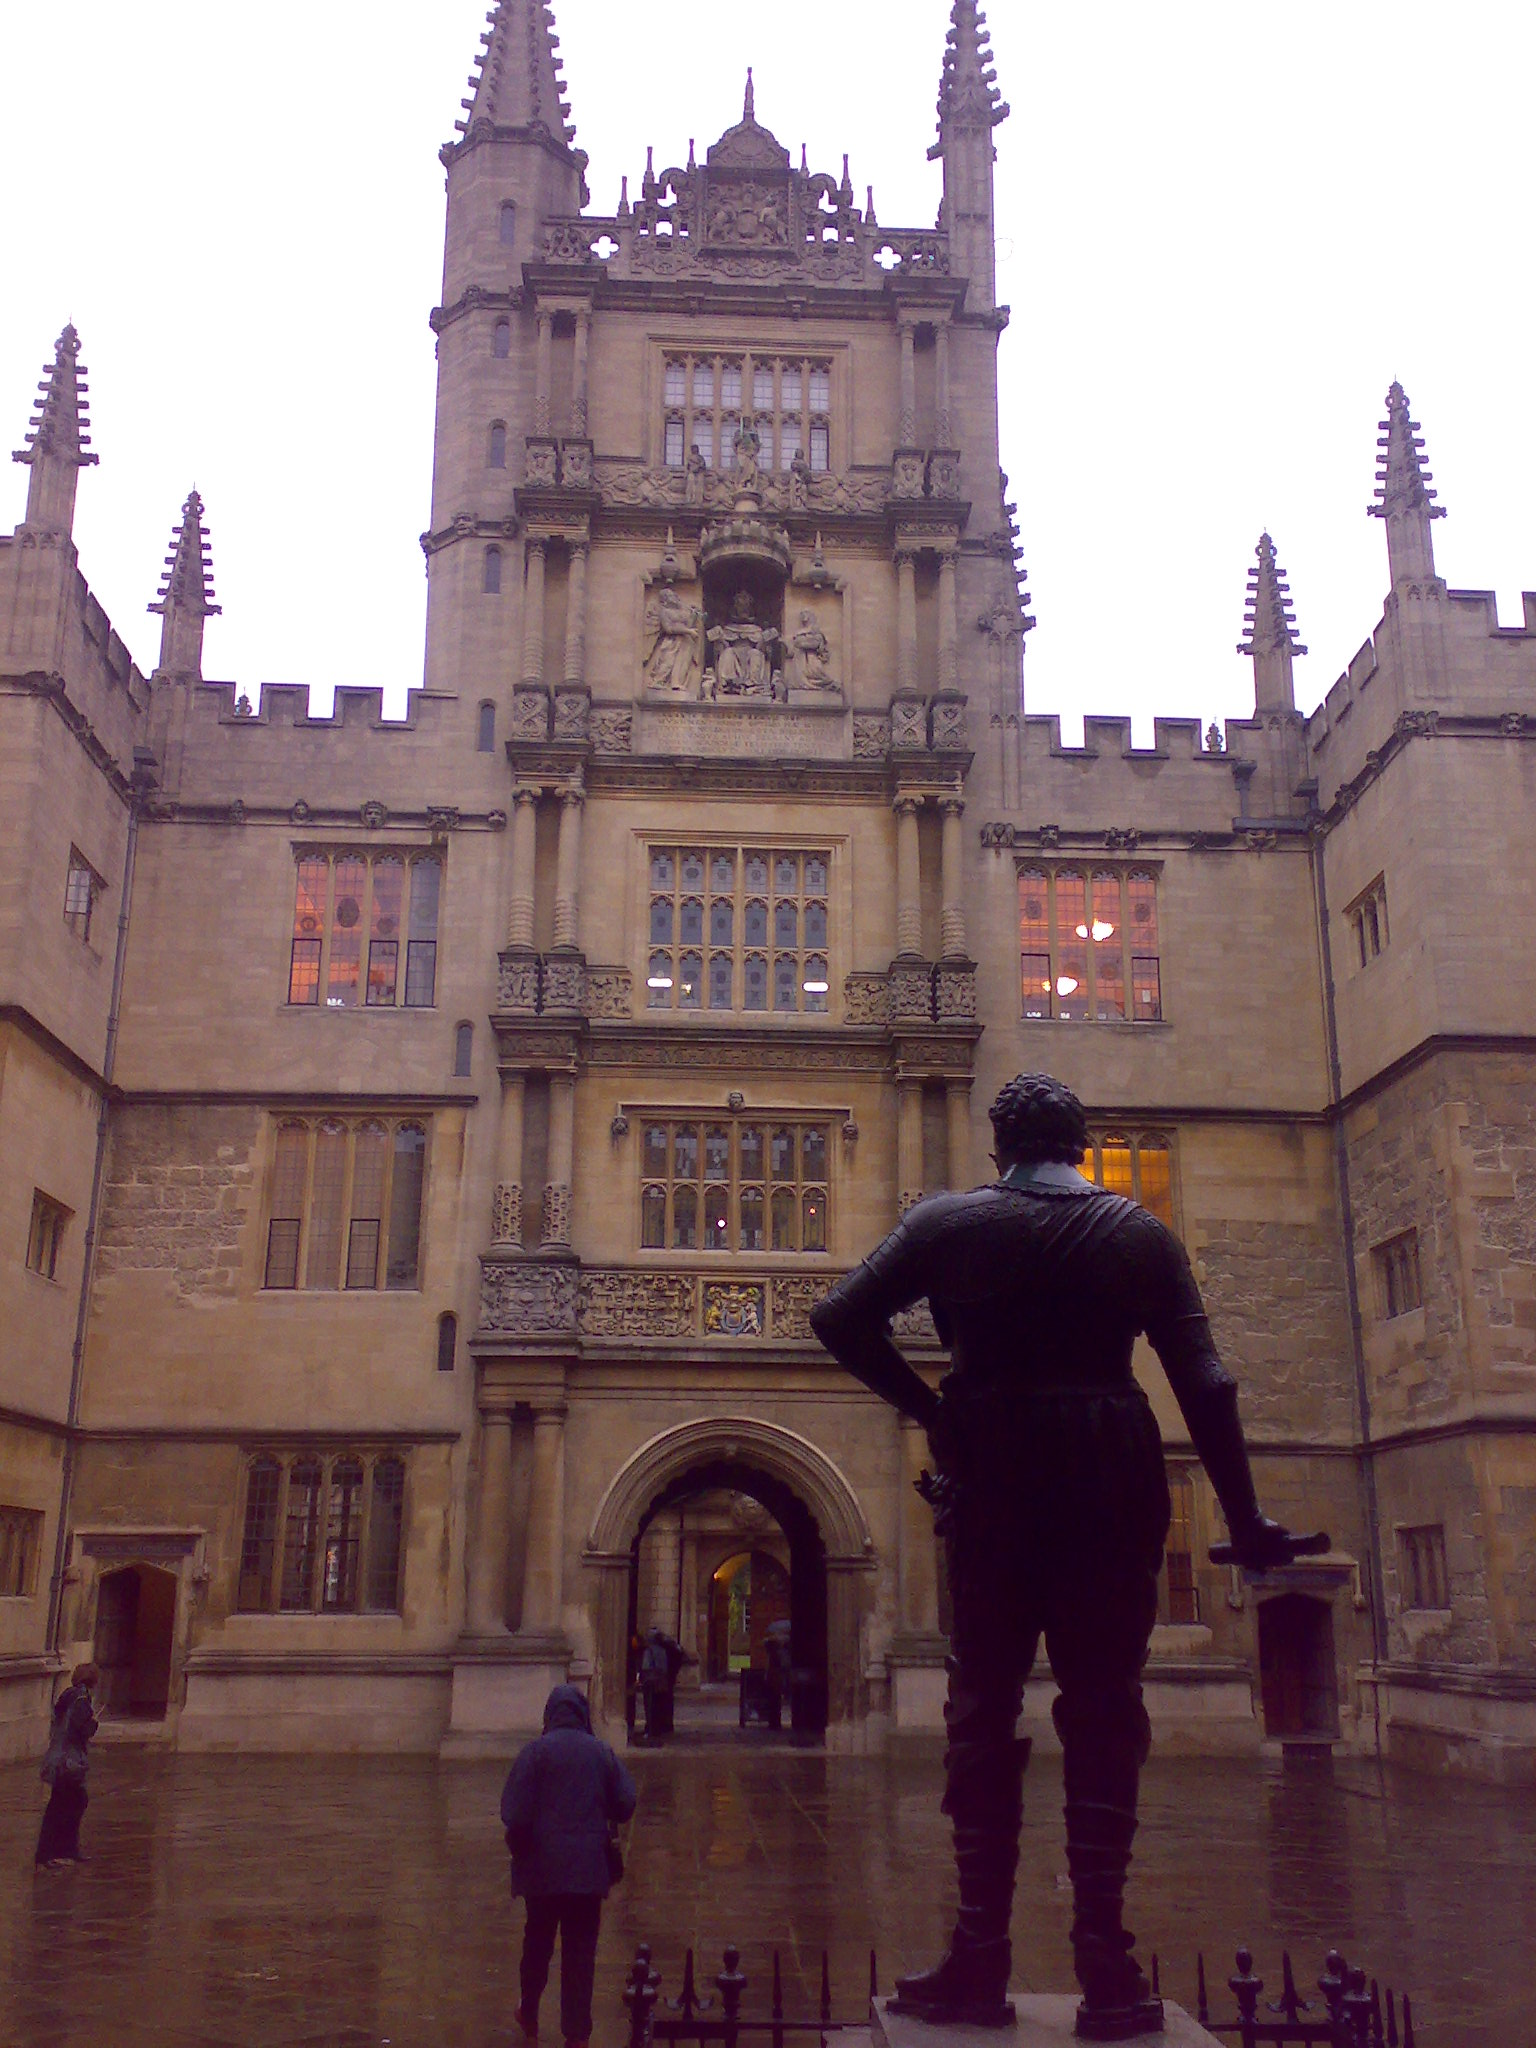 http://upload.wikimedia.org/wikipedia/commons/7/74/The_Tower_of_the_Five_Orders_Oxford.jpg